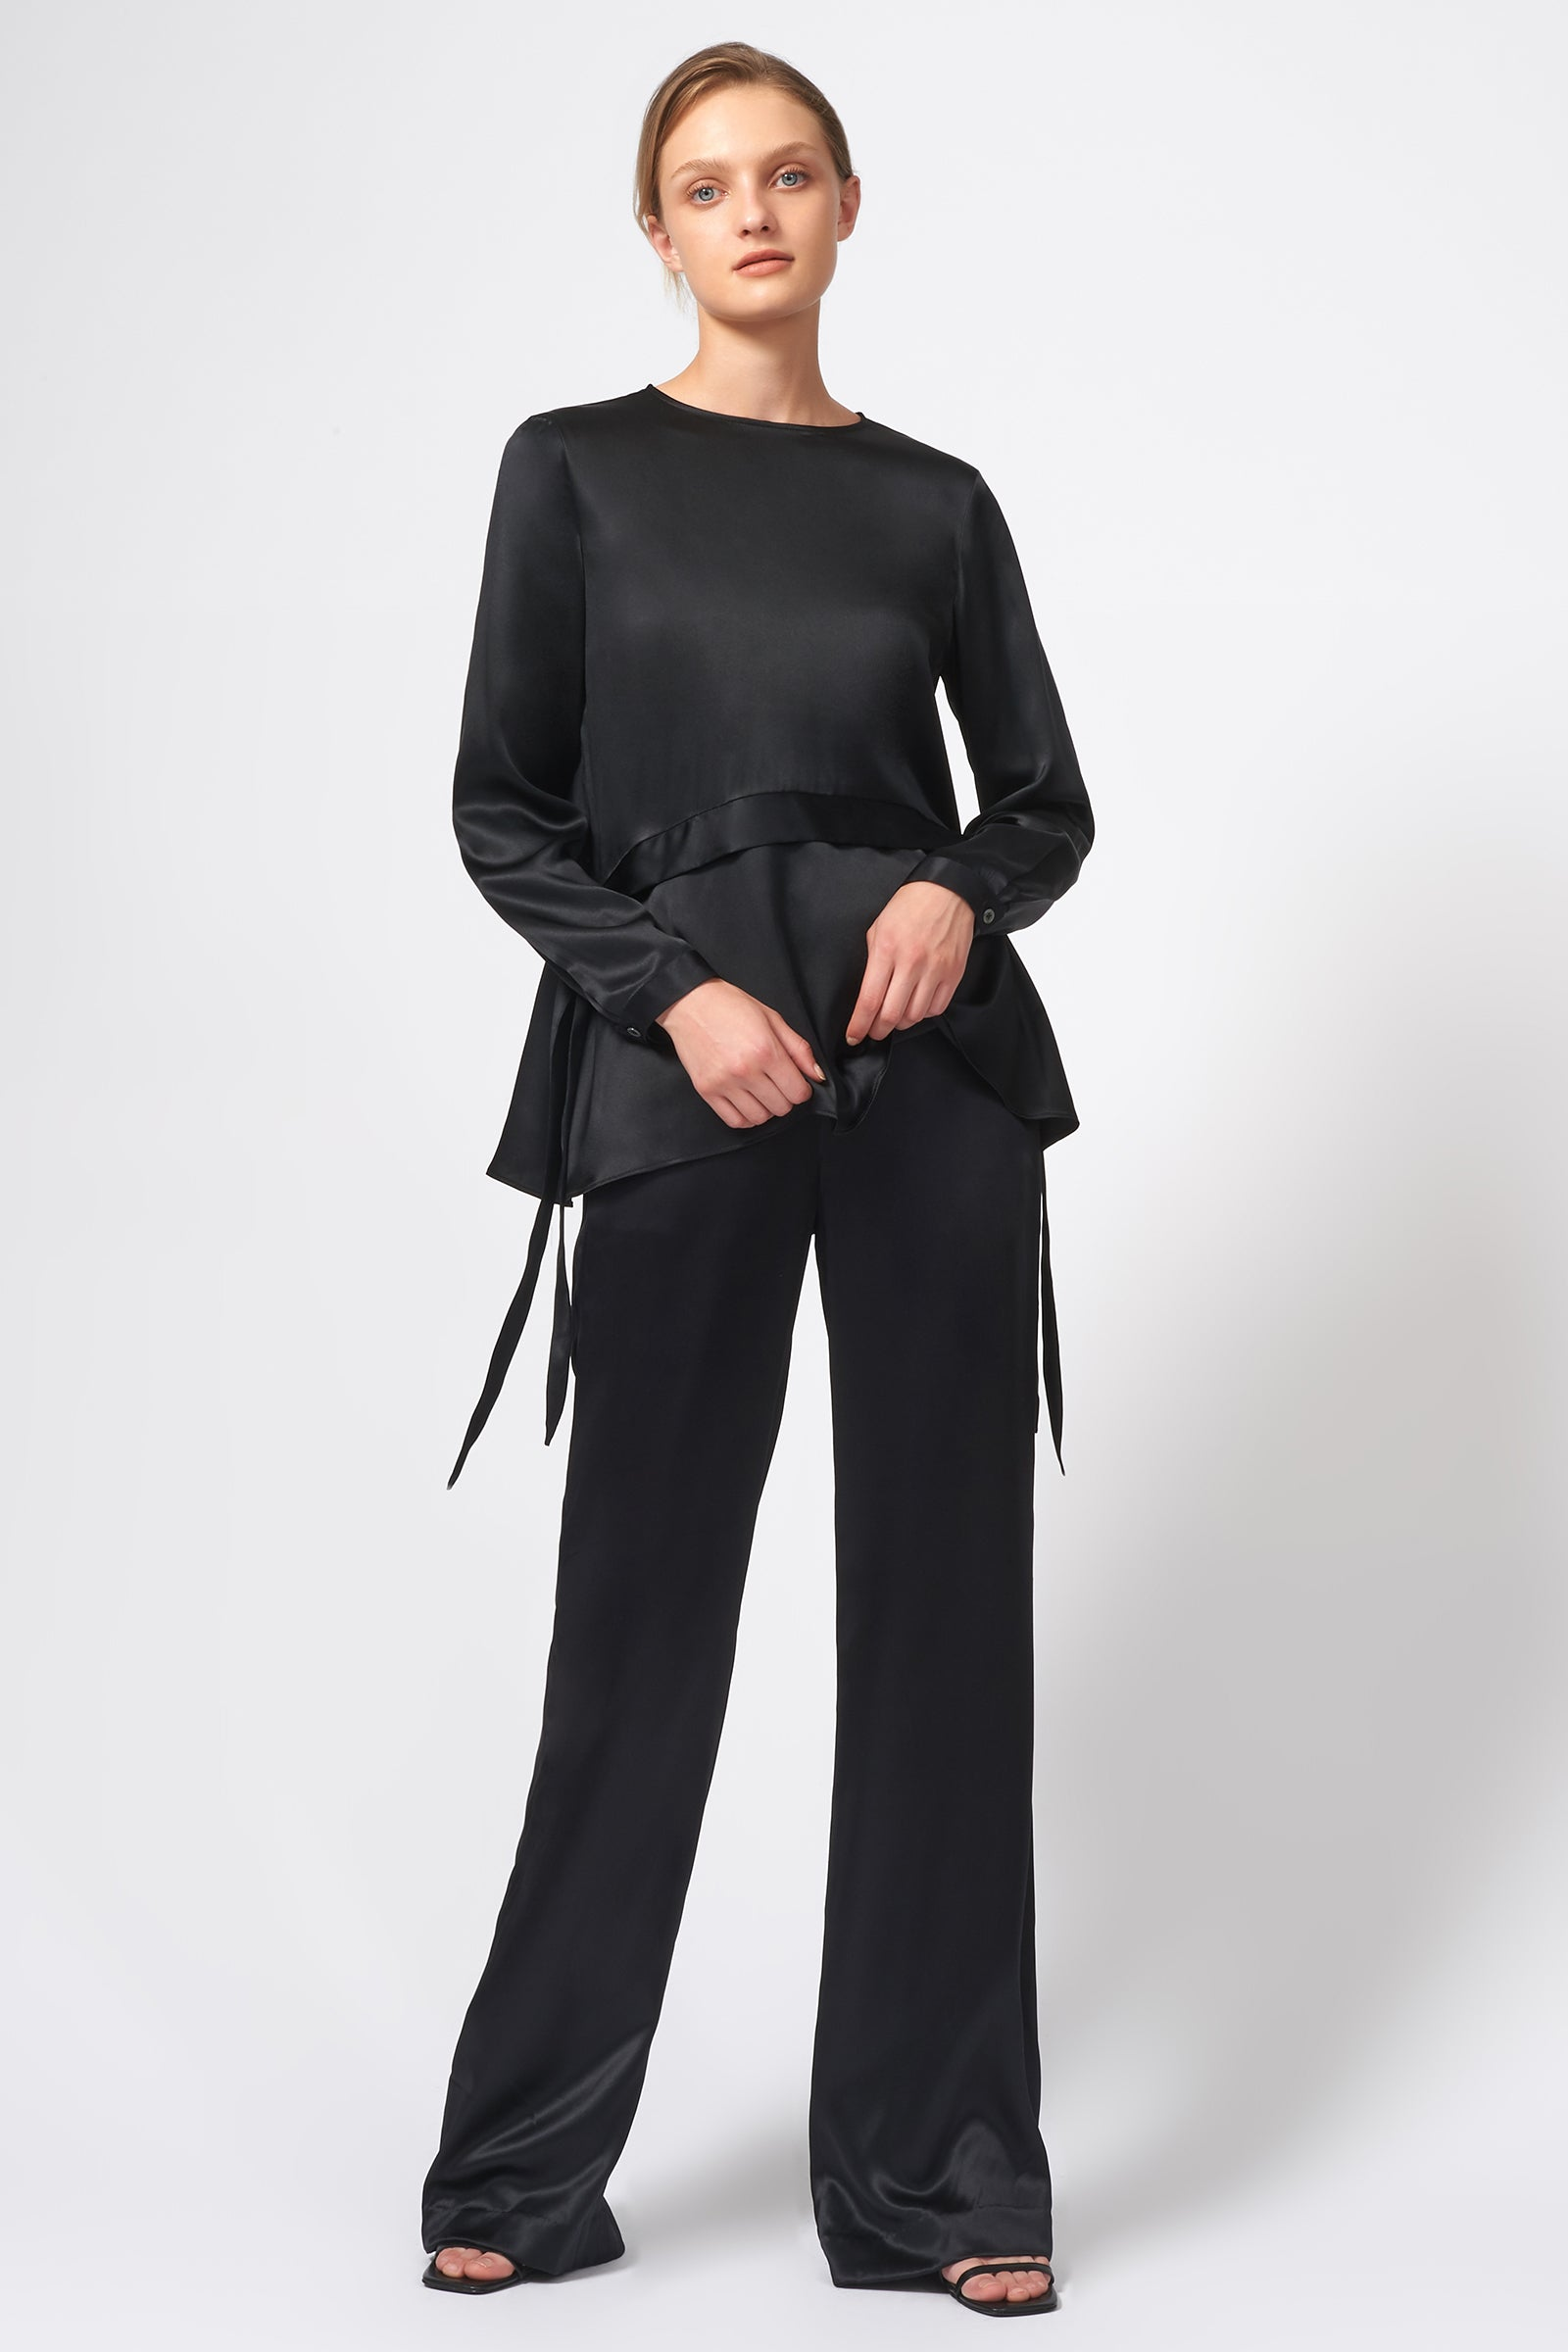 Kal Rieman Side Tie Peplum Blouse in Black on Model Front Full View